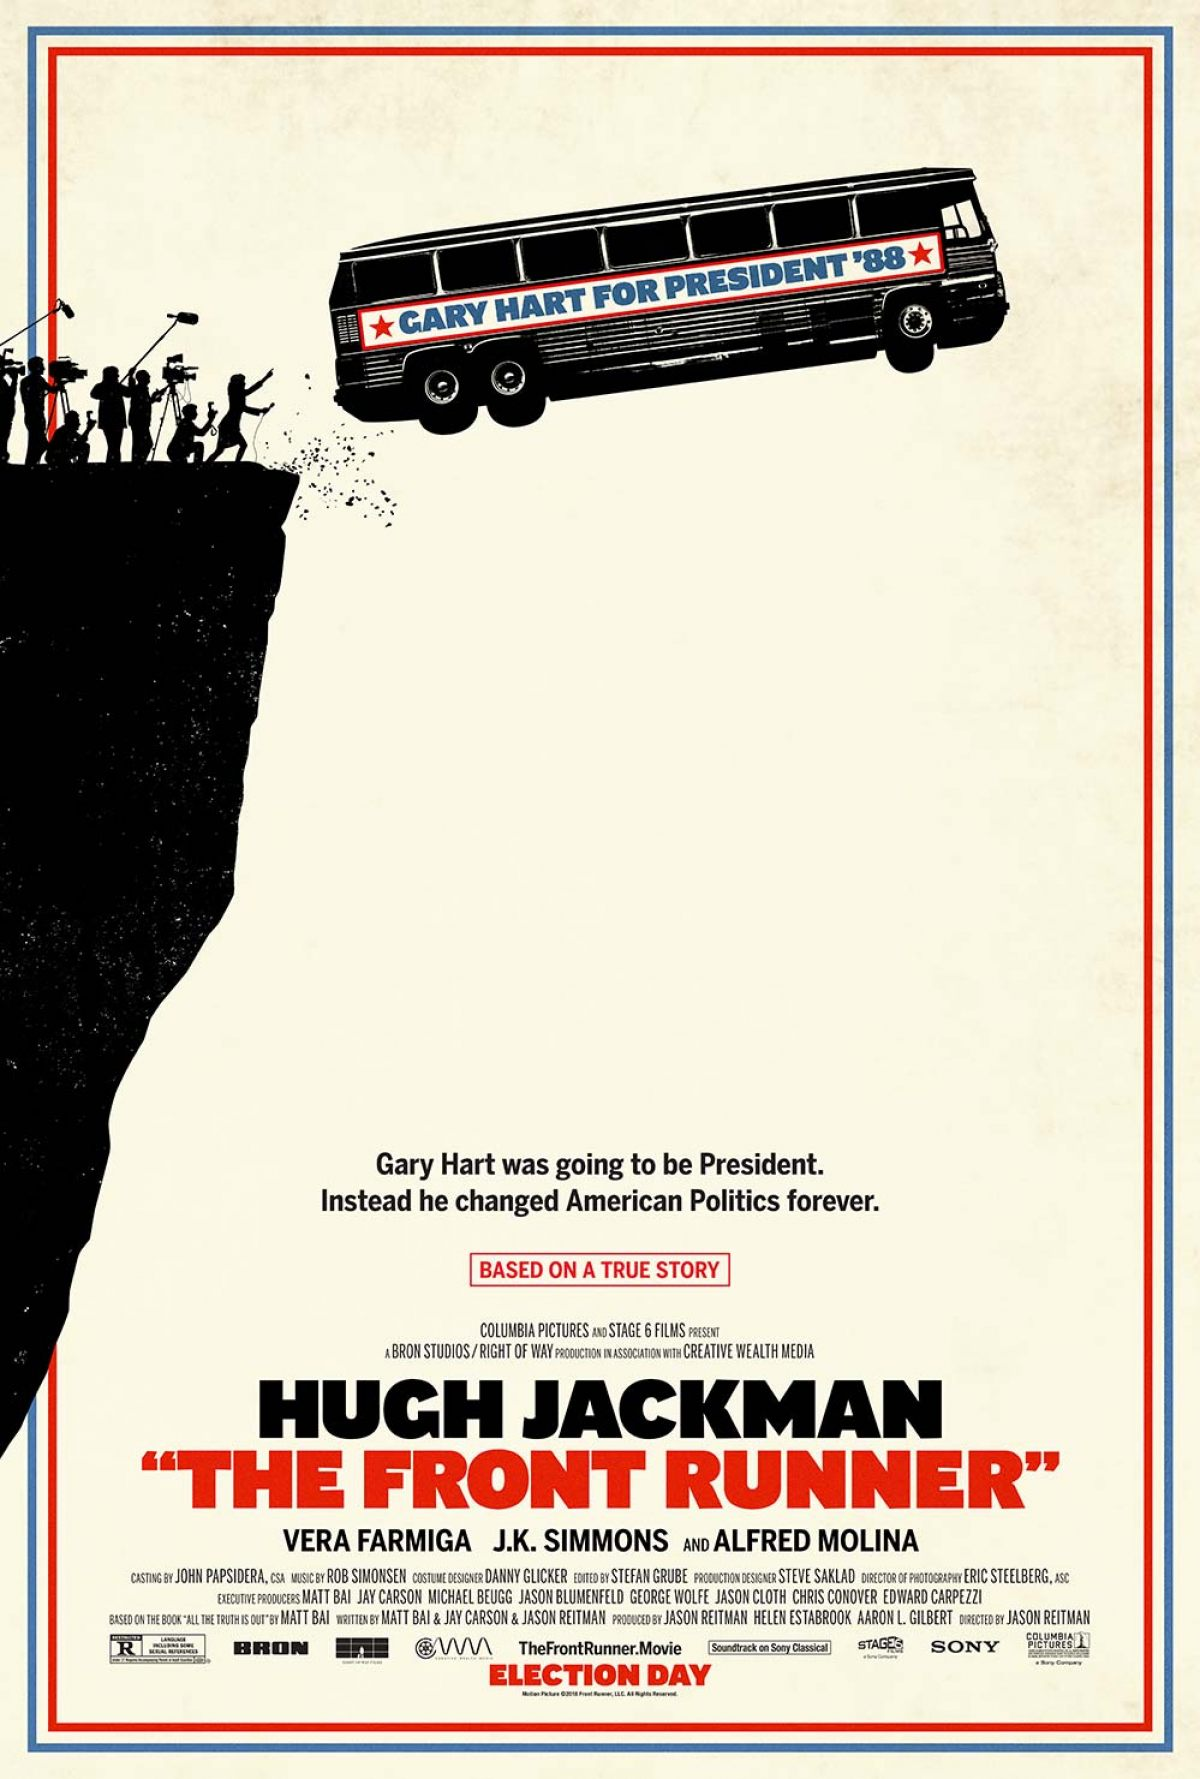 [Image: The_Front_Runner_Poster_1200_1779_81_s.jpg]